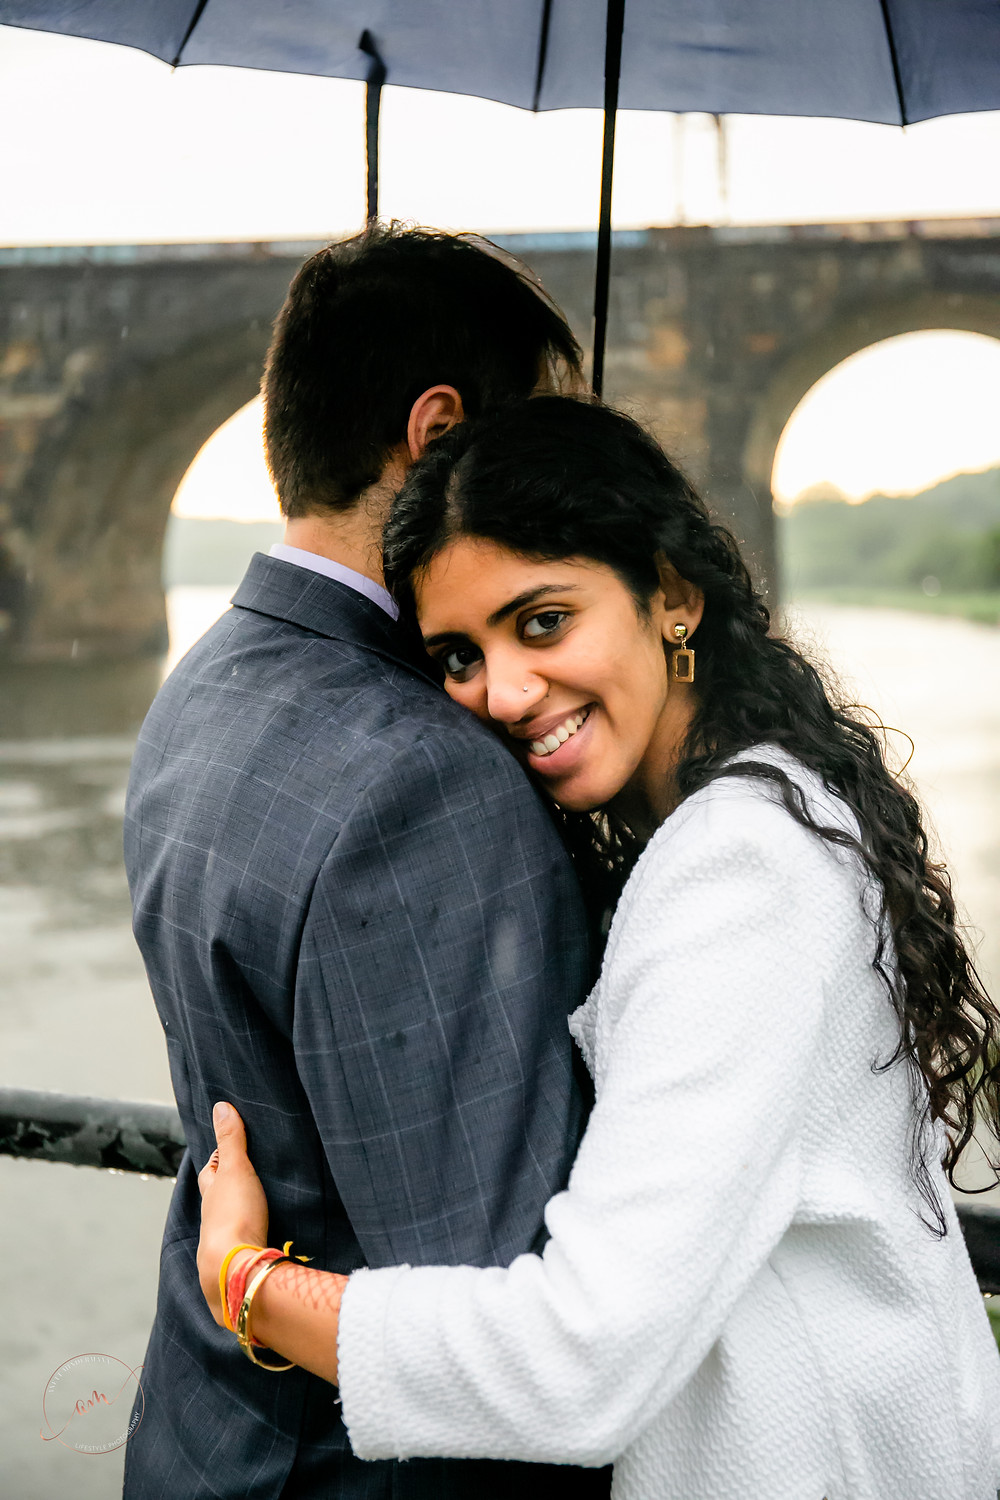 Girlfriend is hugging and smiling boyfriend under the umbrella during engagement session with South NJ Photographer Anett Mindermann Photography